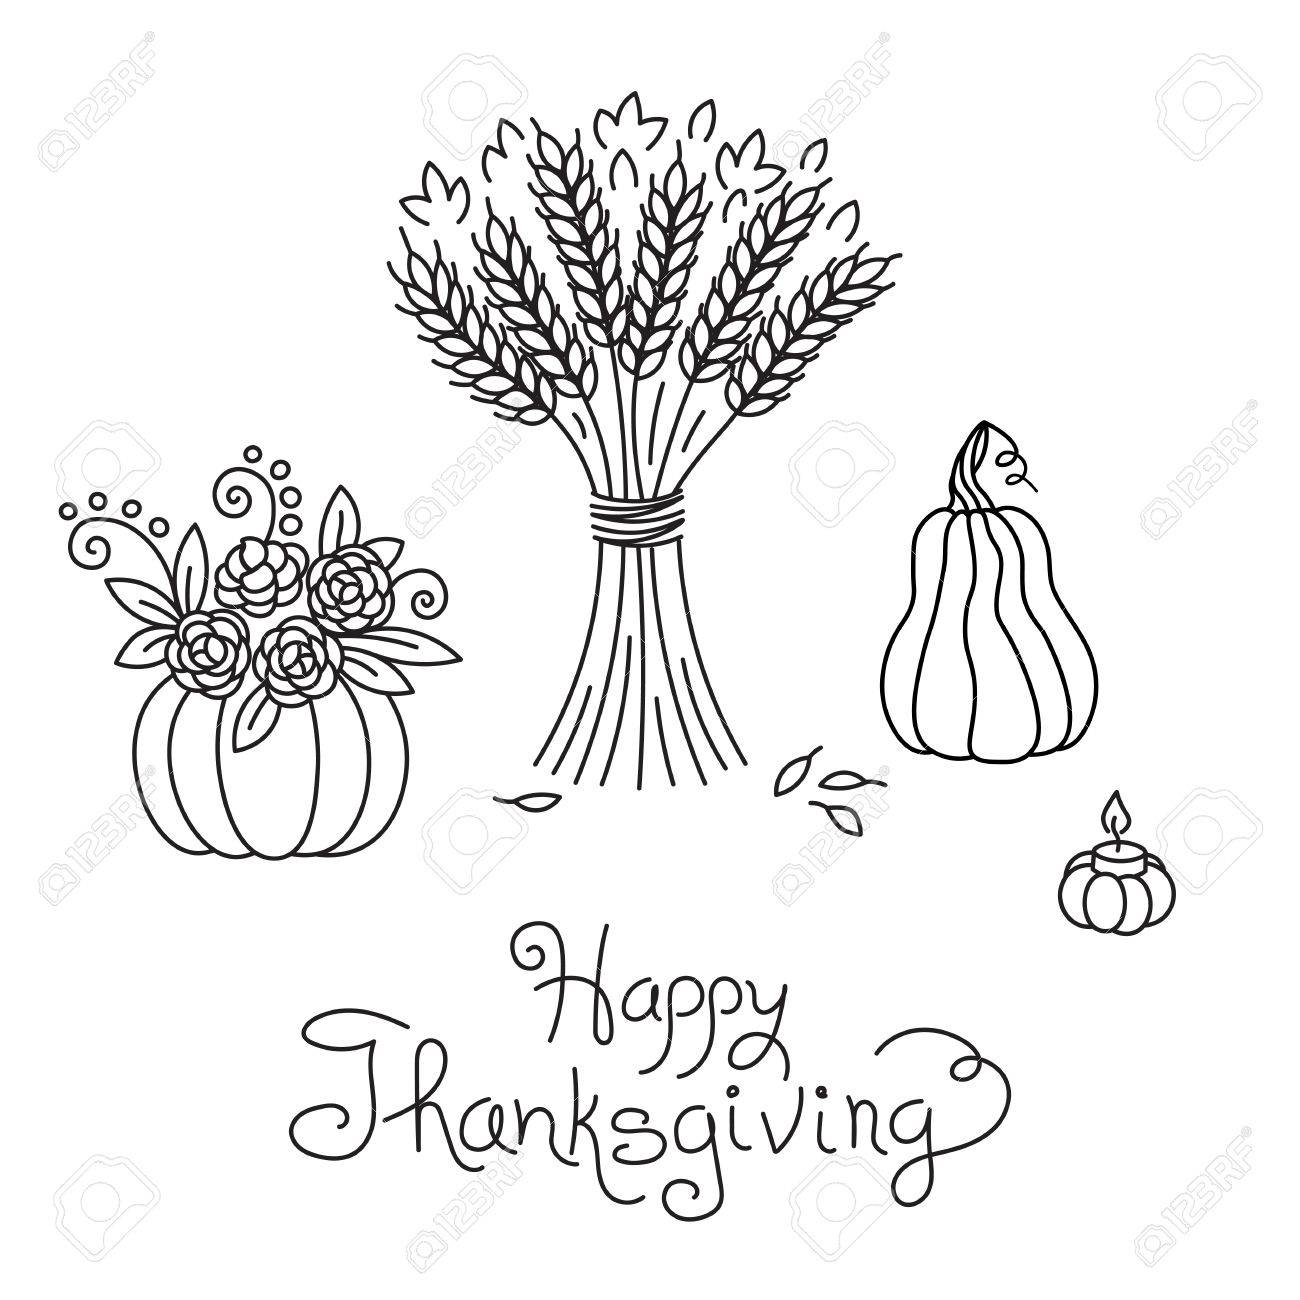 1300x1300 Doodle Thanksgiving Vintage Sheaf Of Wheat And Pumpkin Freehand